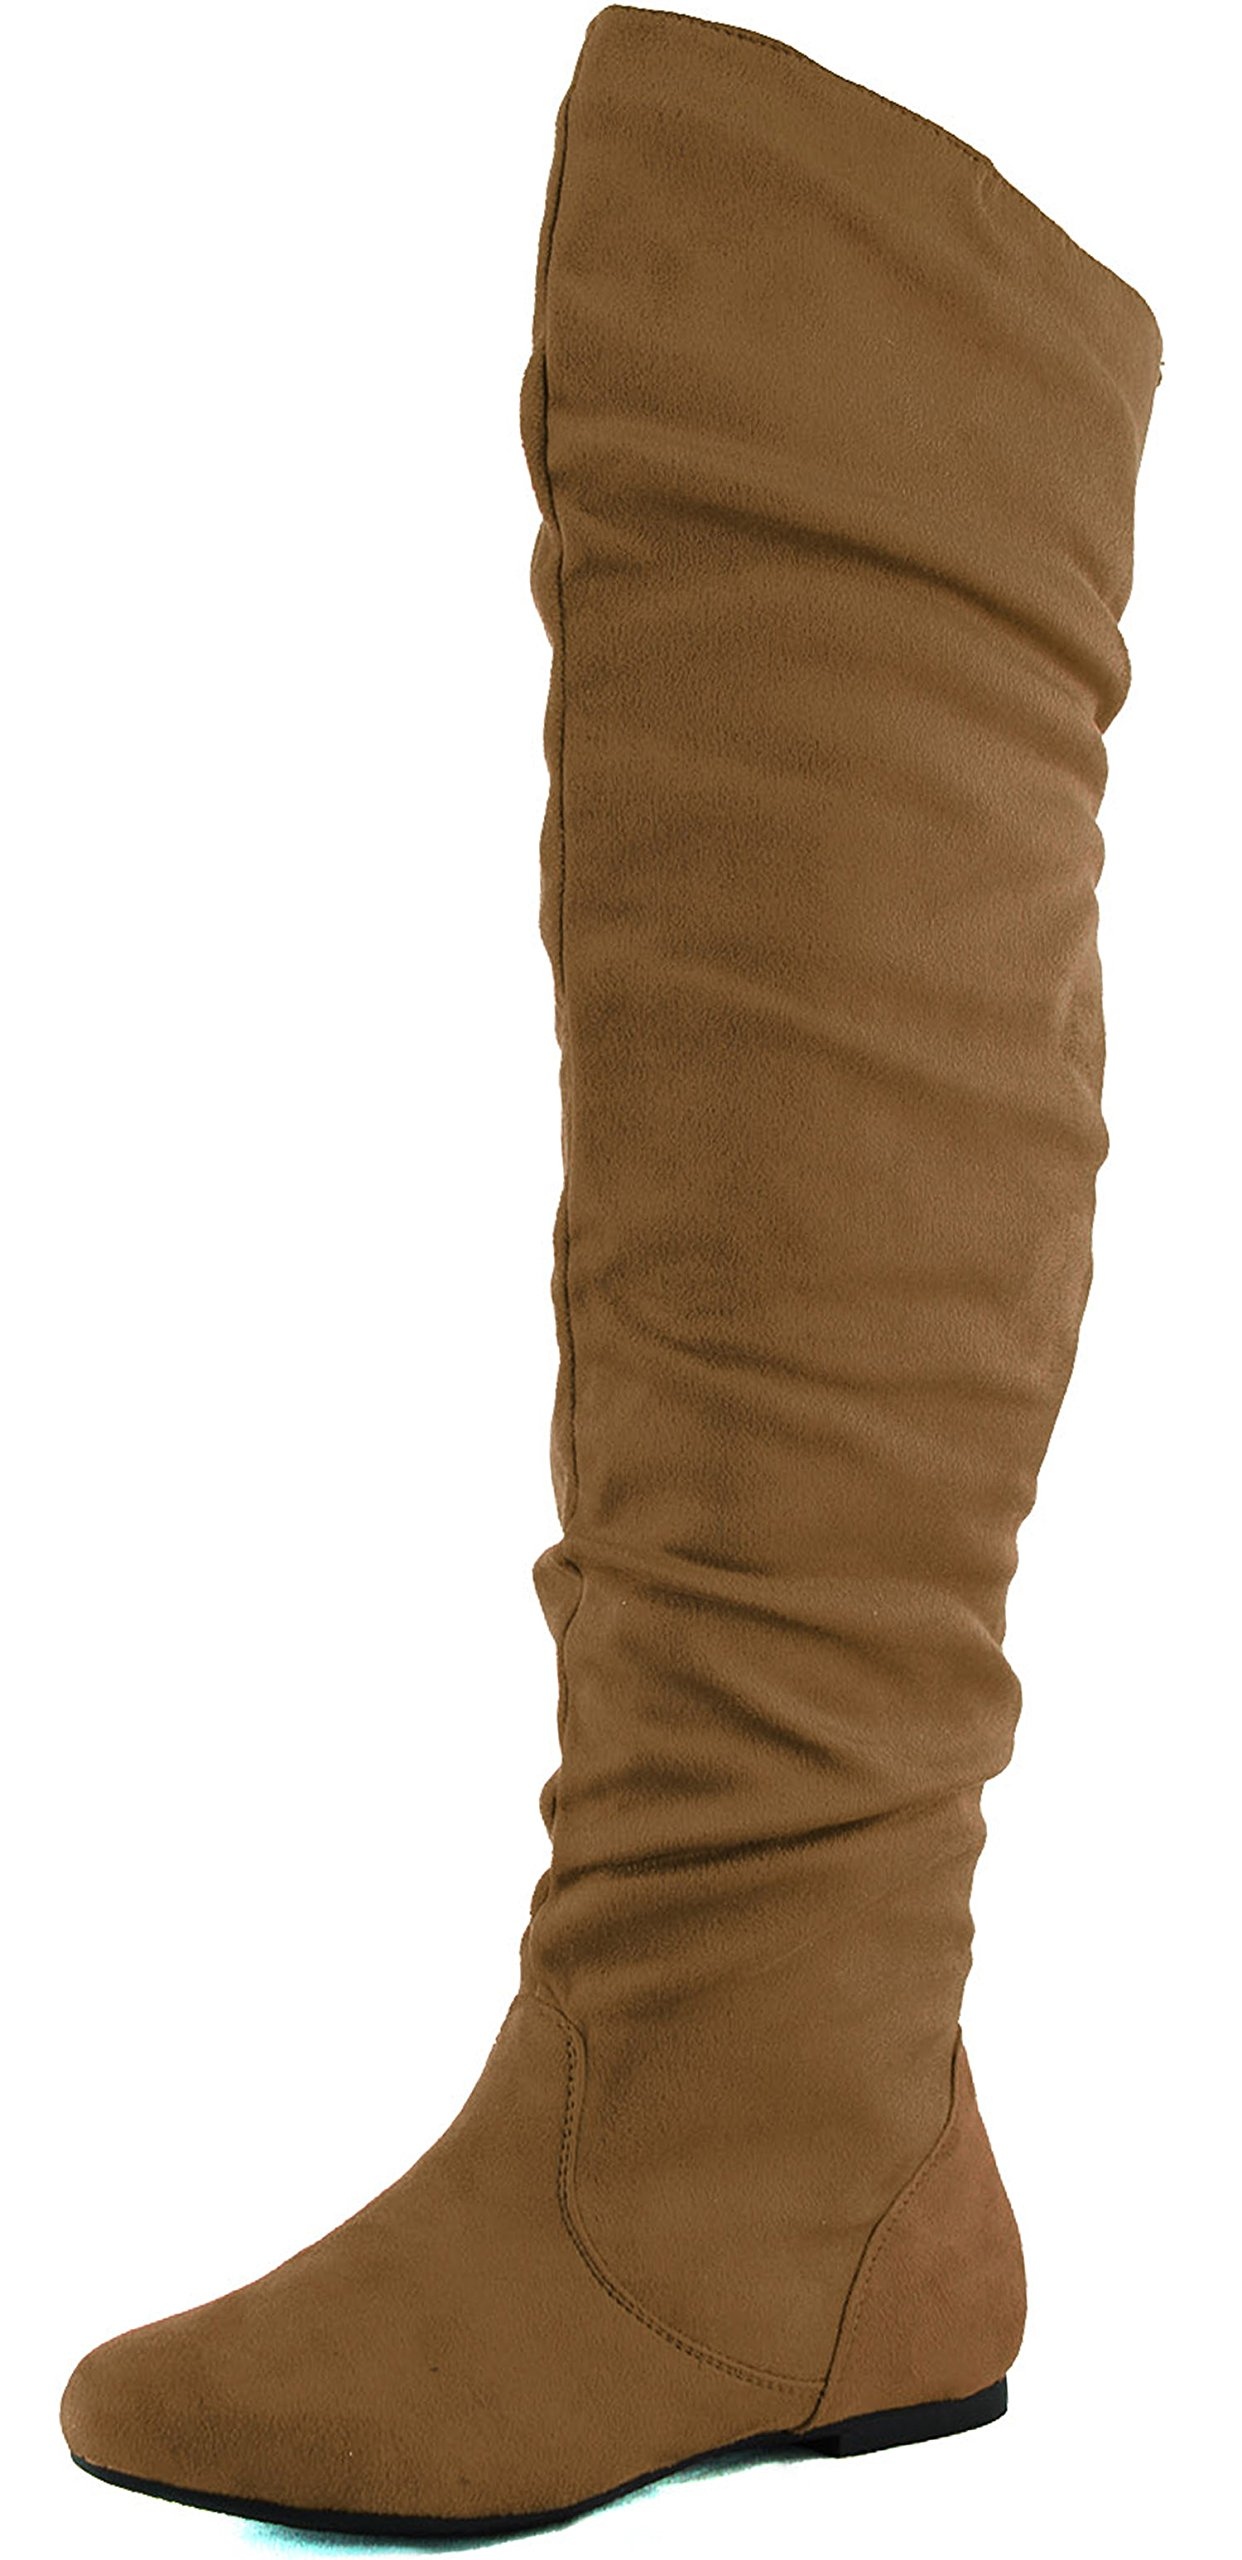 DailyShoes Women's Fashion-Hi Over the Knee Thigh High Boots, Camel Sv, 5.5 B(M)